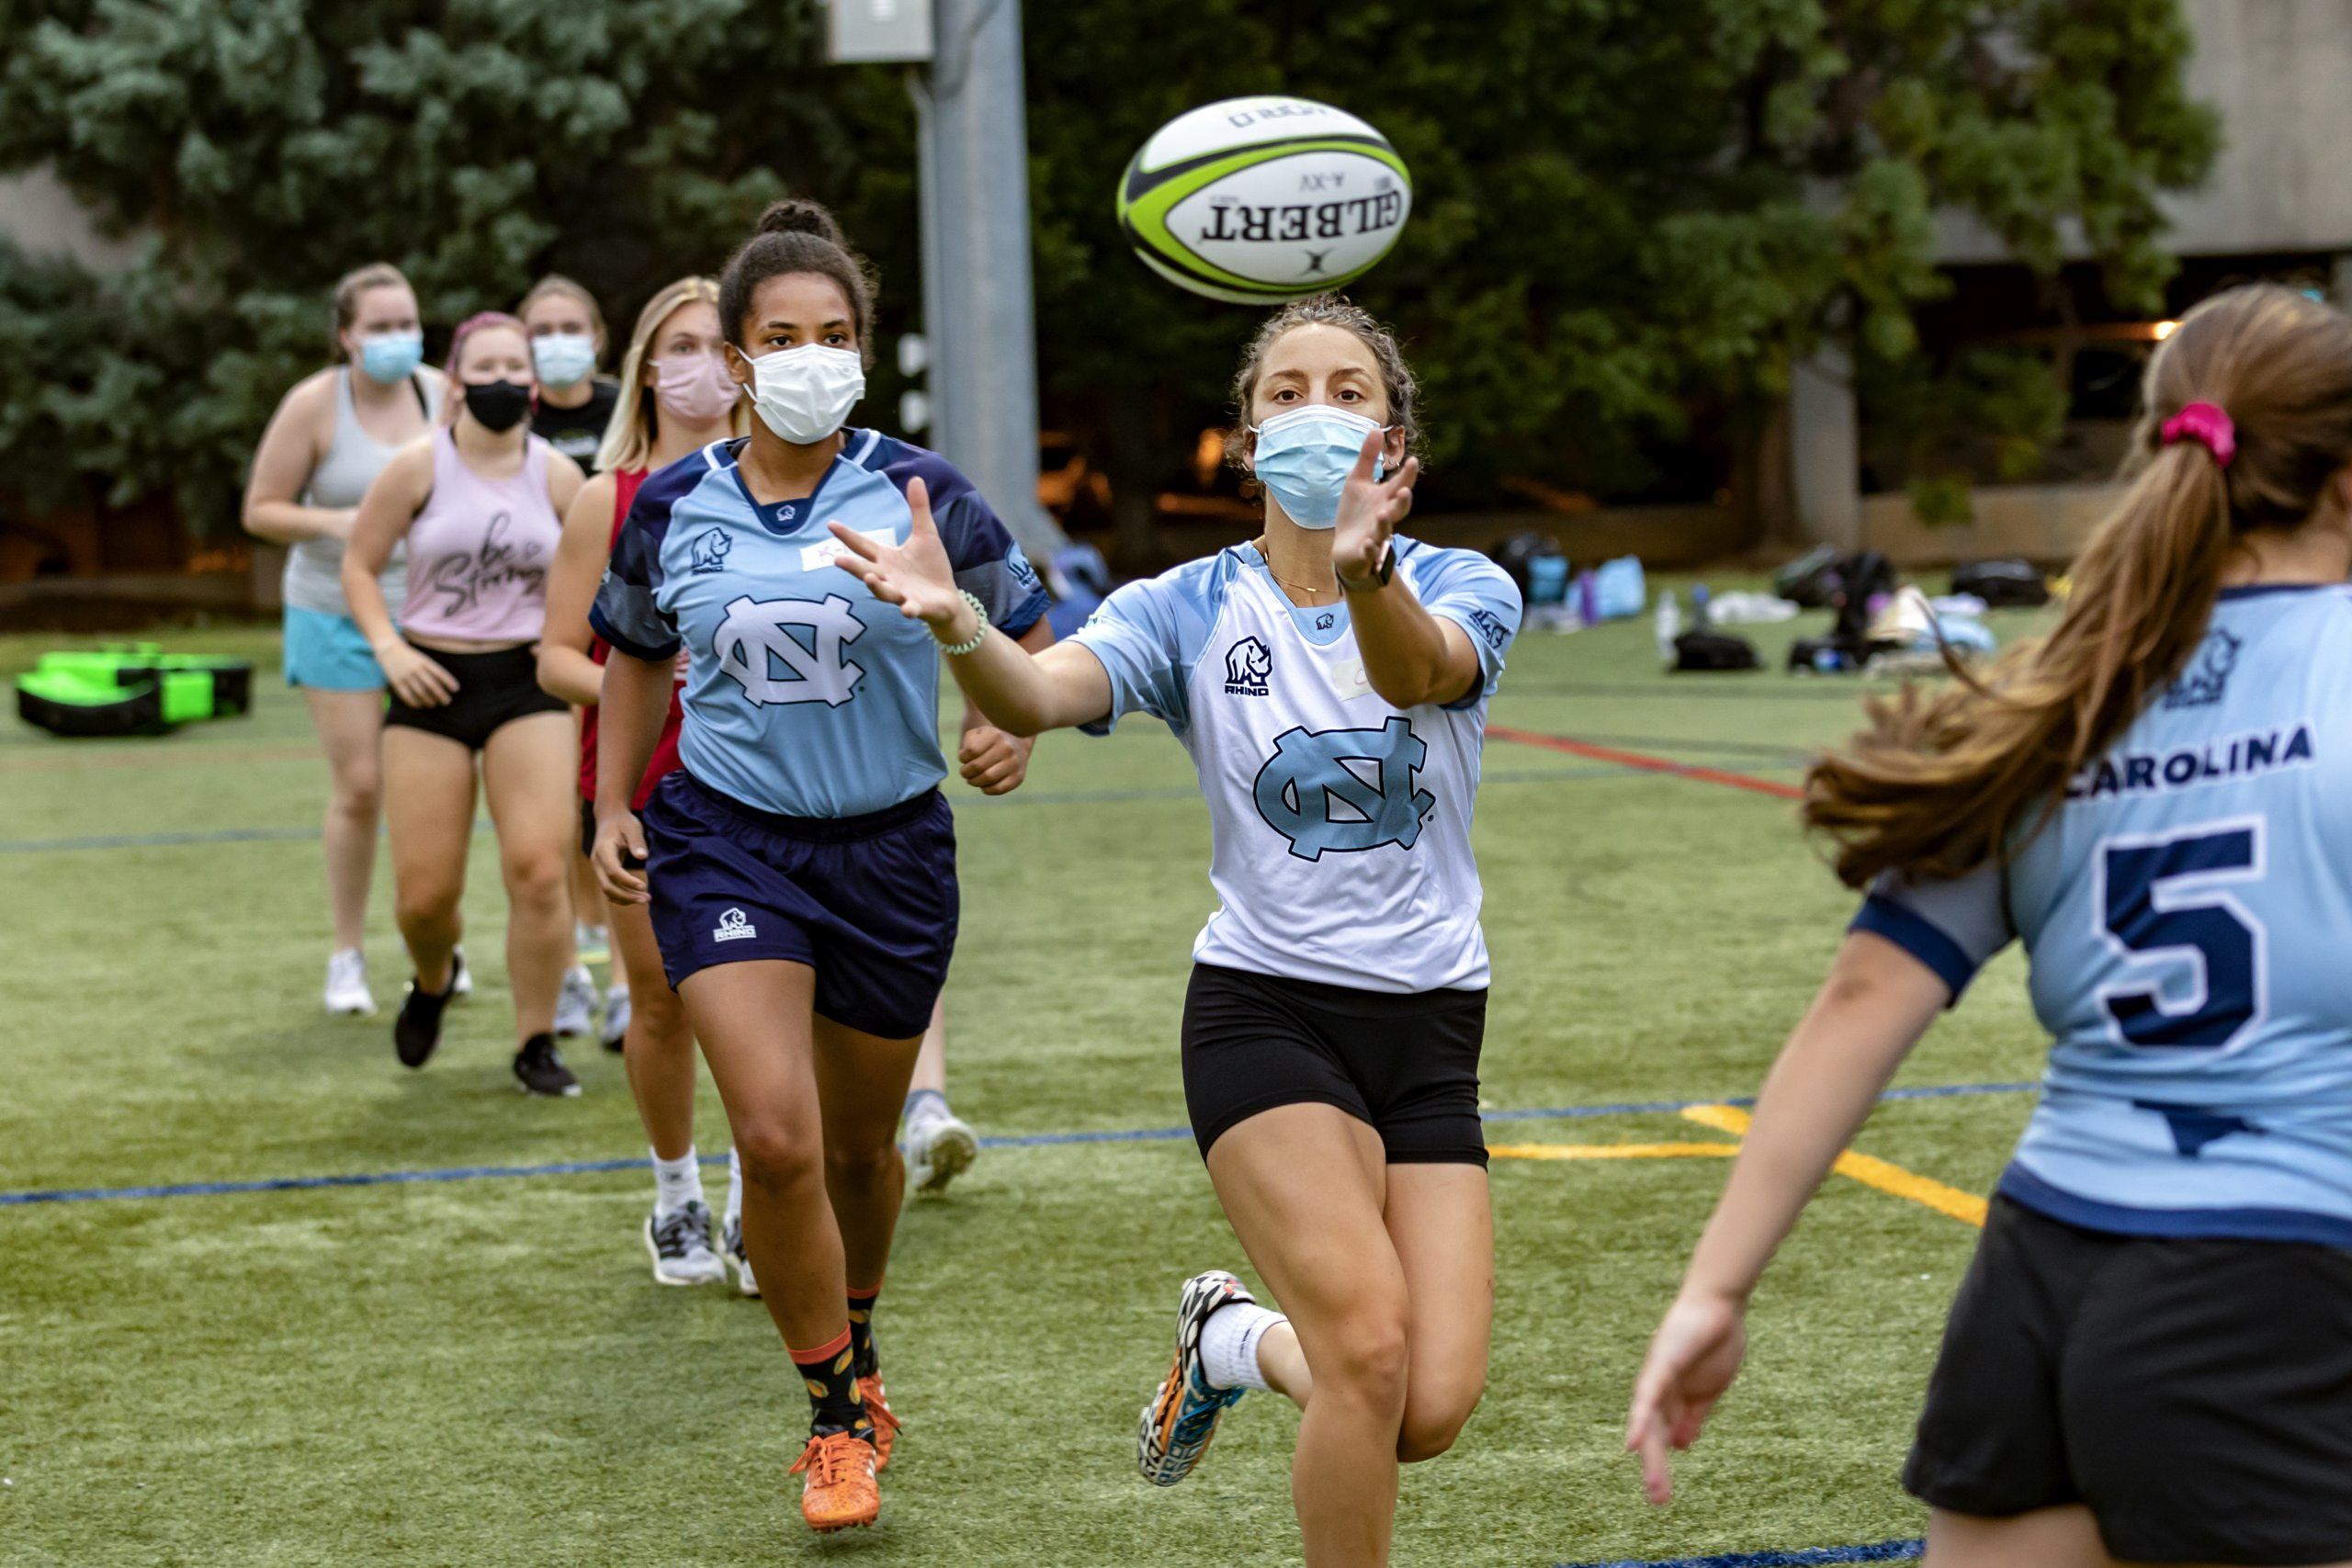 Students pass a ball at a rugby practice.